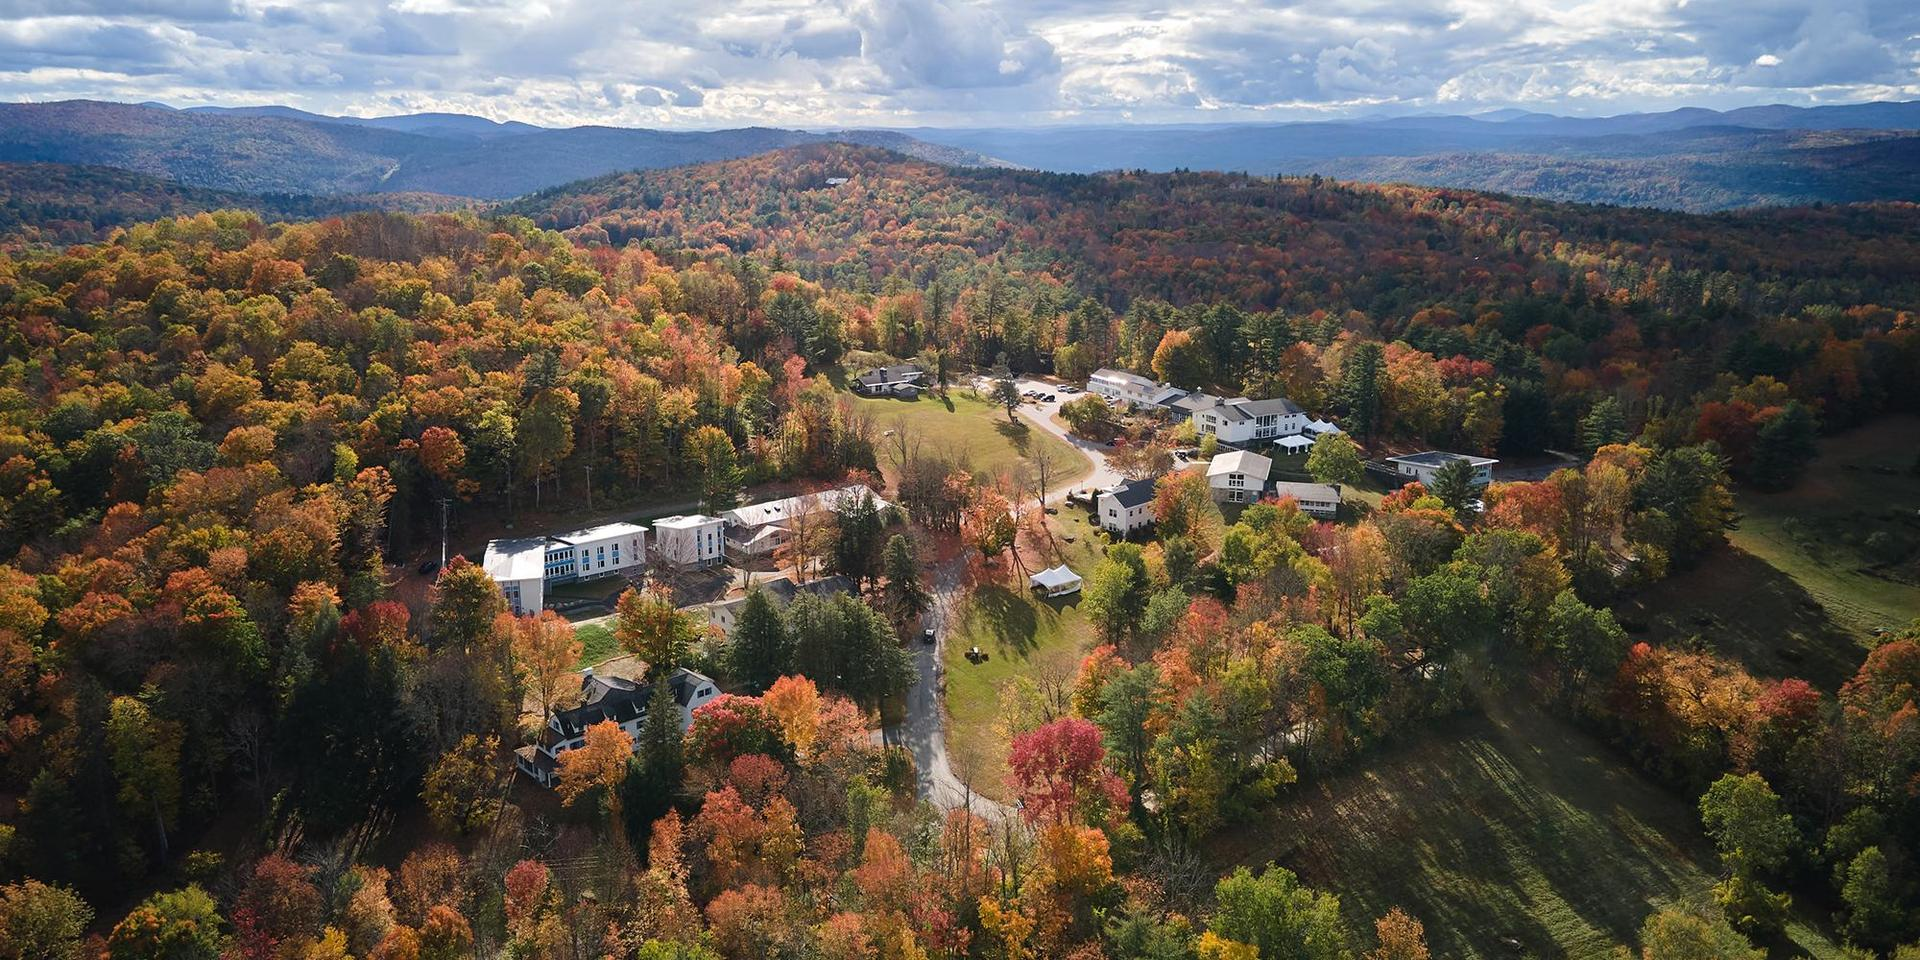 An aerial photo of the campus of The White Mountain School in the fall.